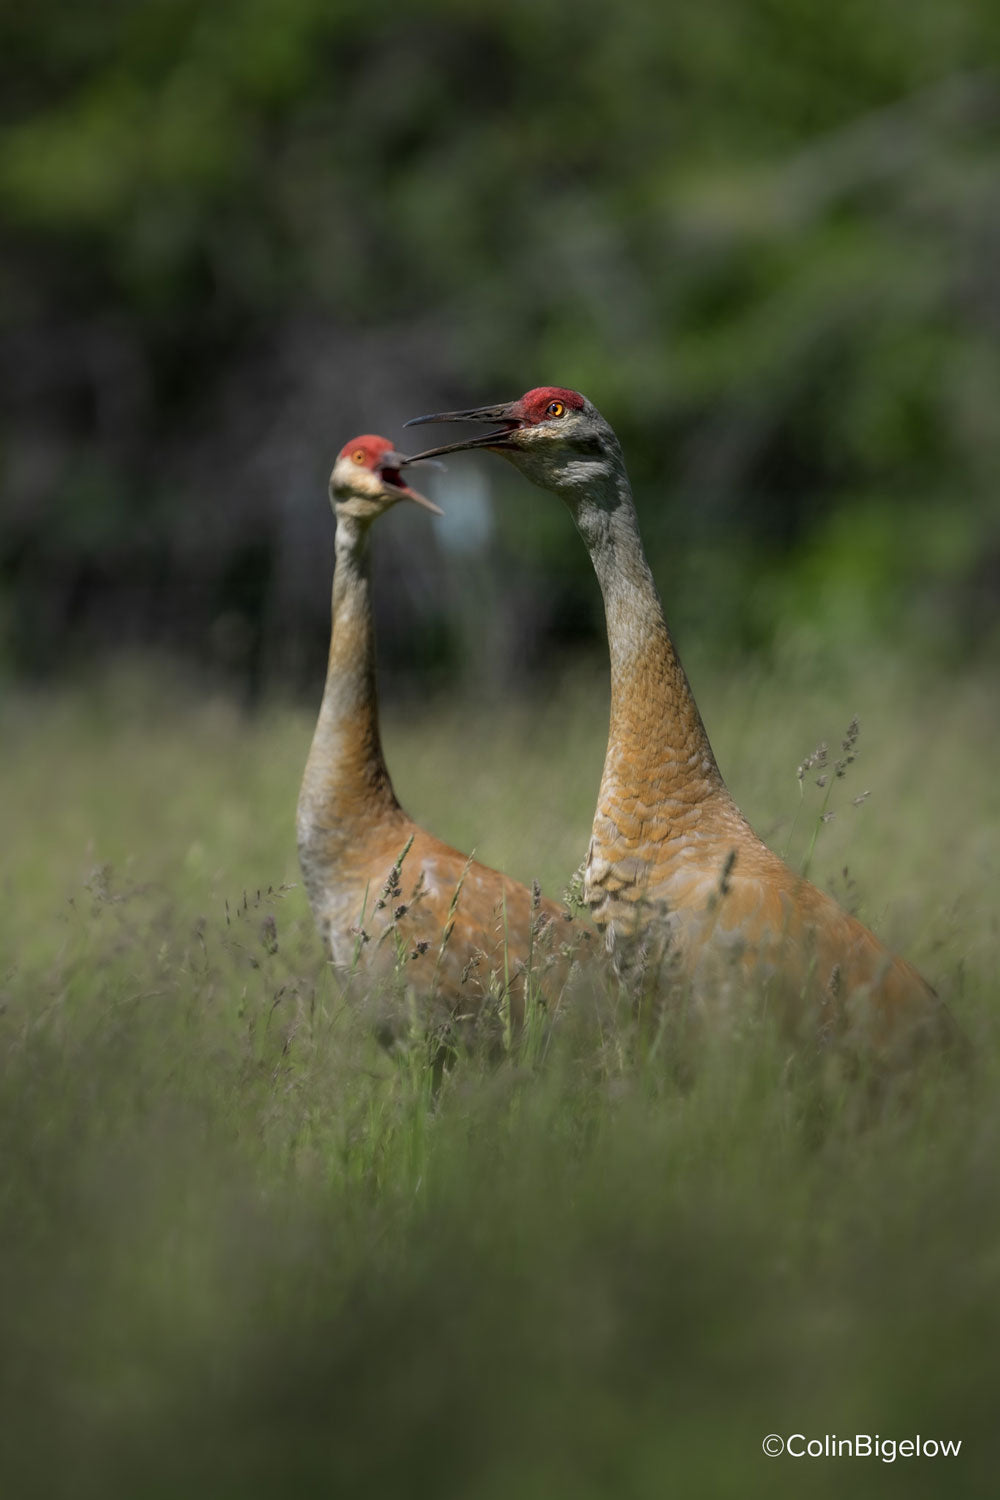 cranes in the foliage by colin bigelow